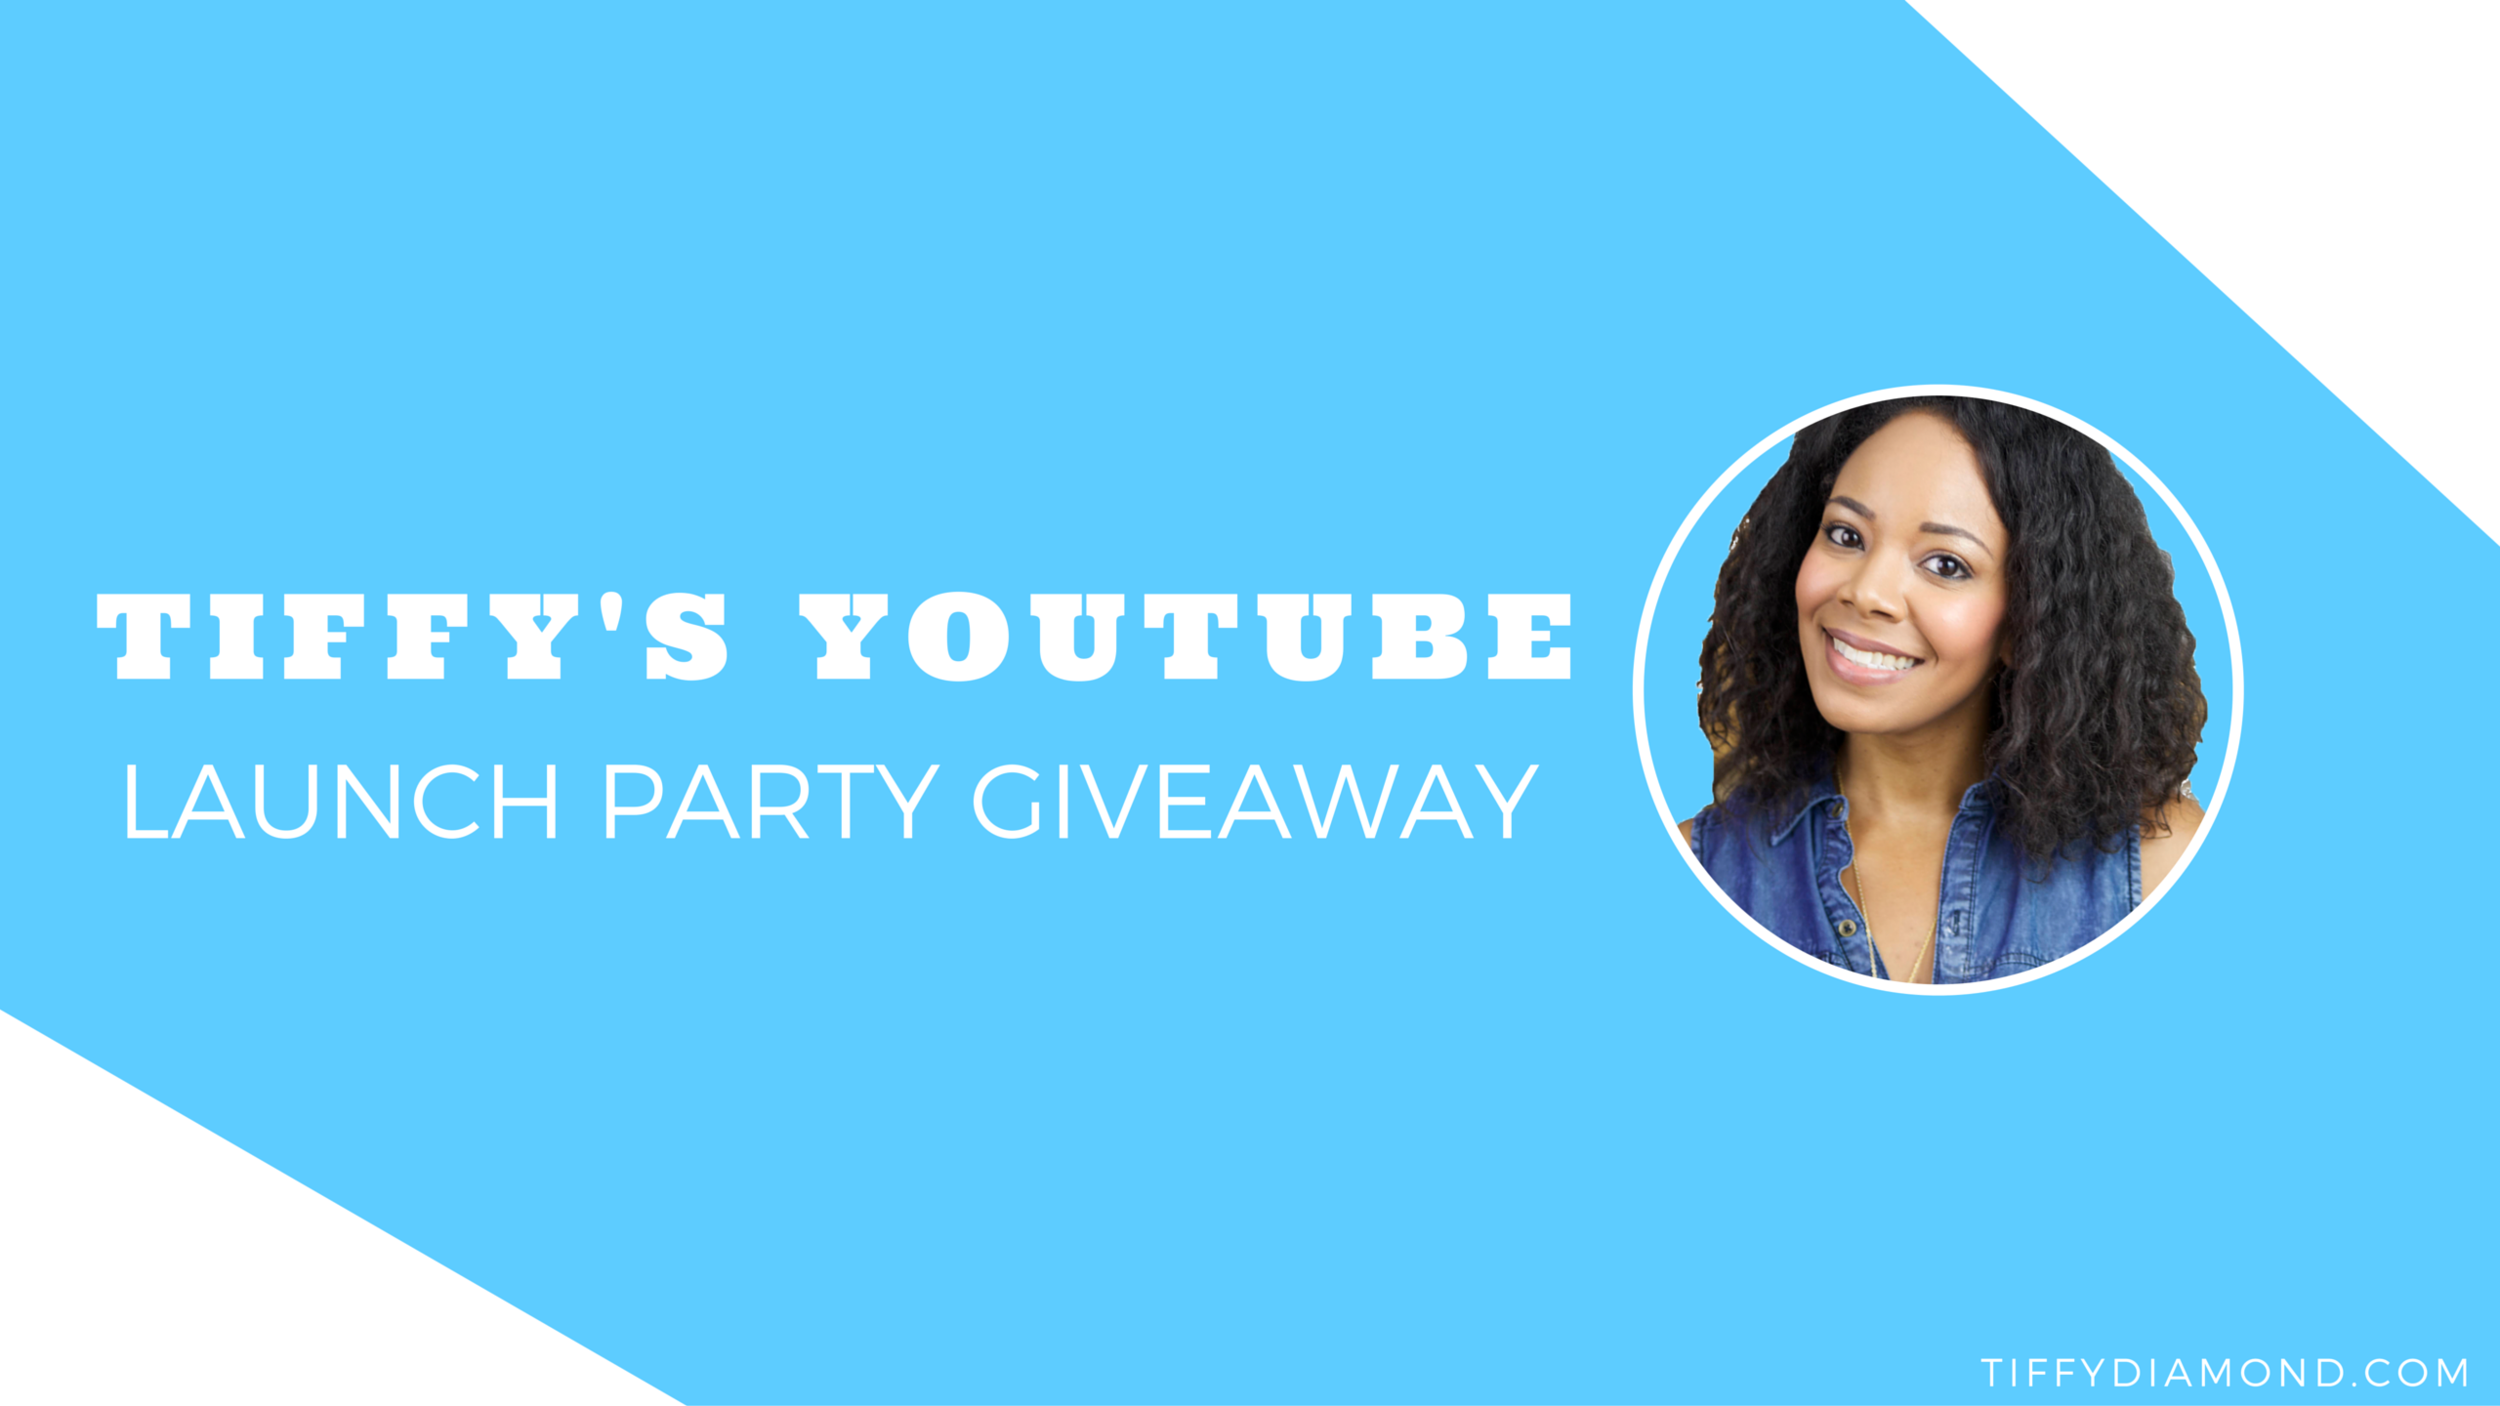 Tiffy Diamond YouTube Launch Party Giveaway